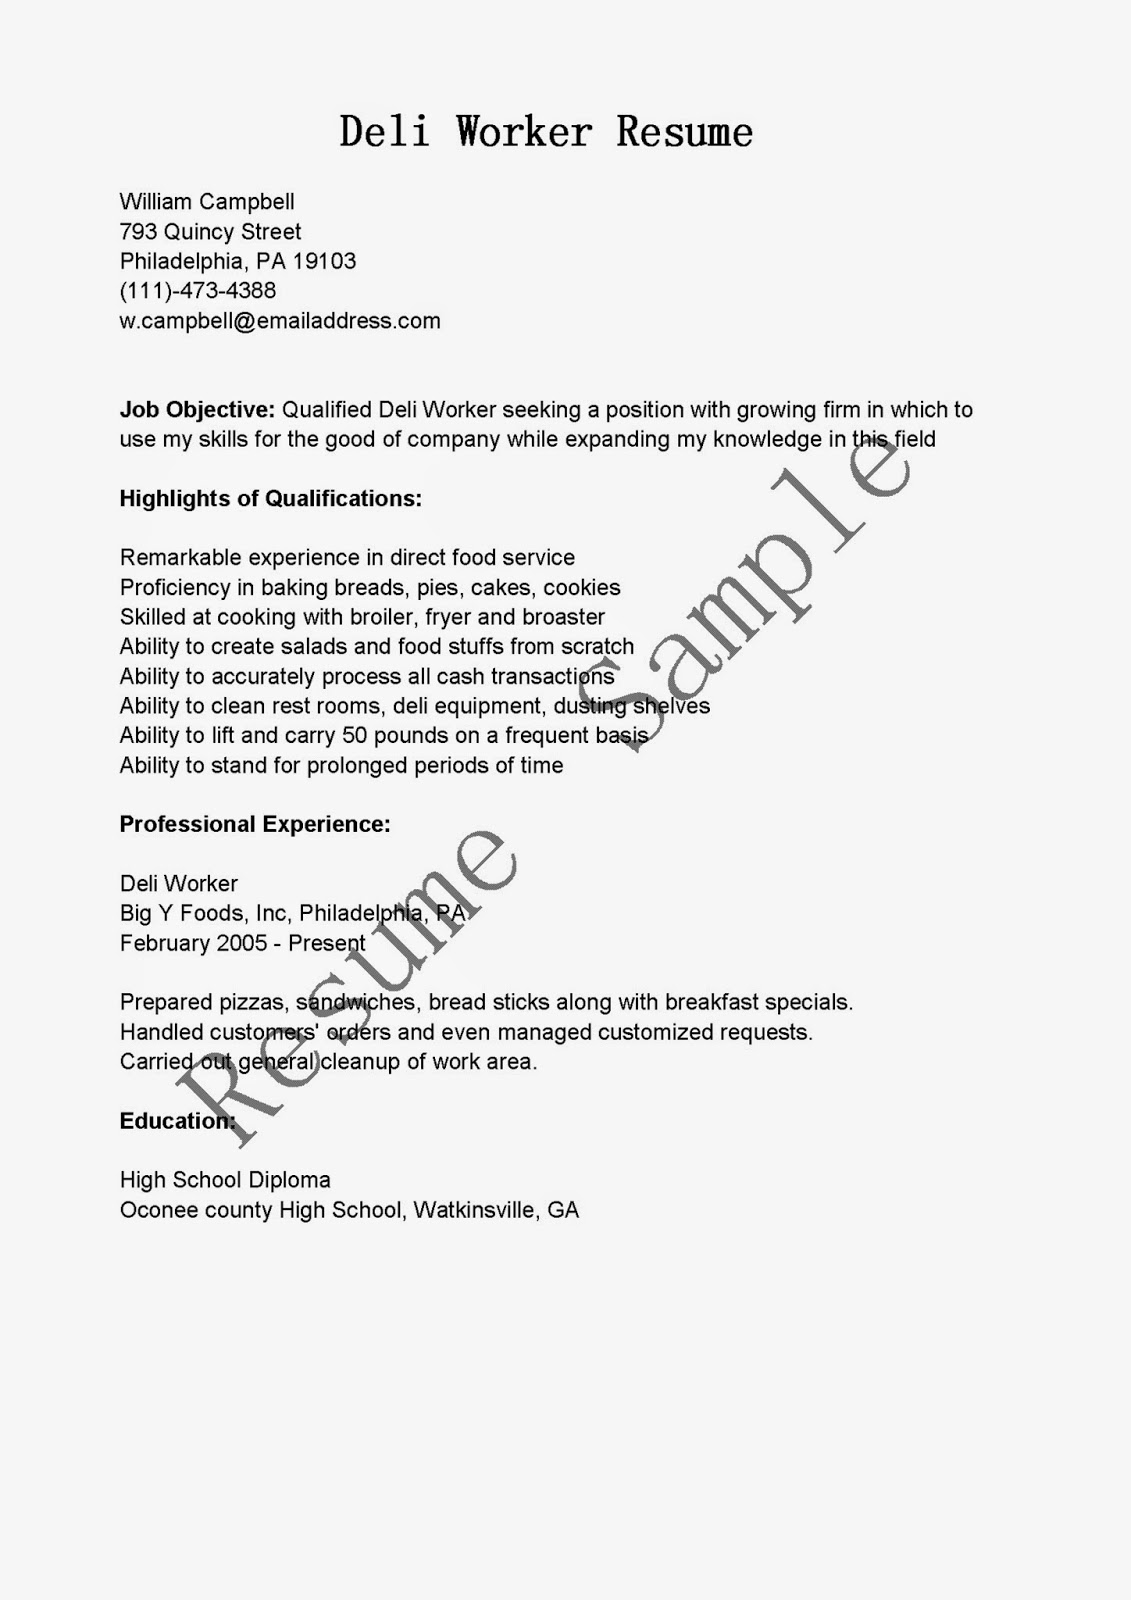 Lunch Supervisor Resume Sample Resume Samples Deli Worker Resume Sample